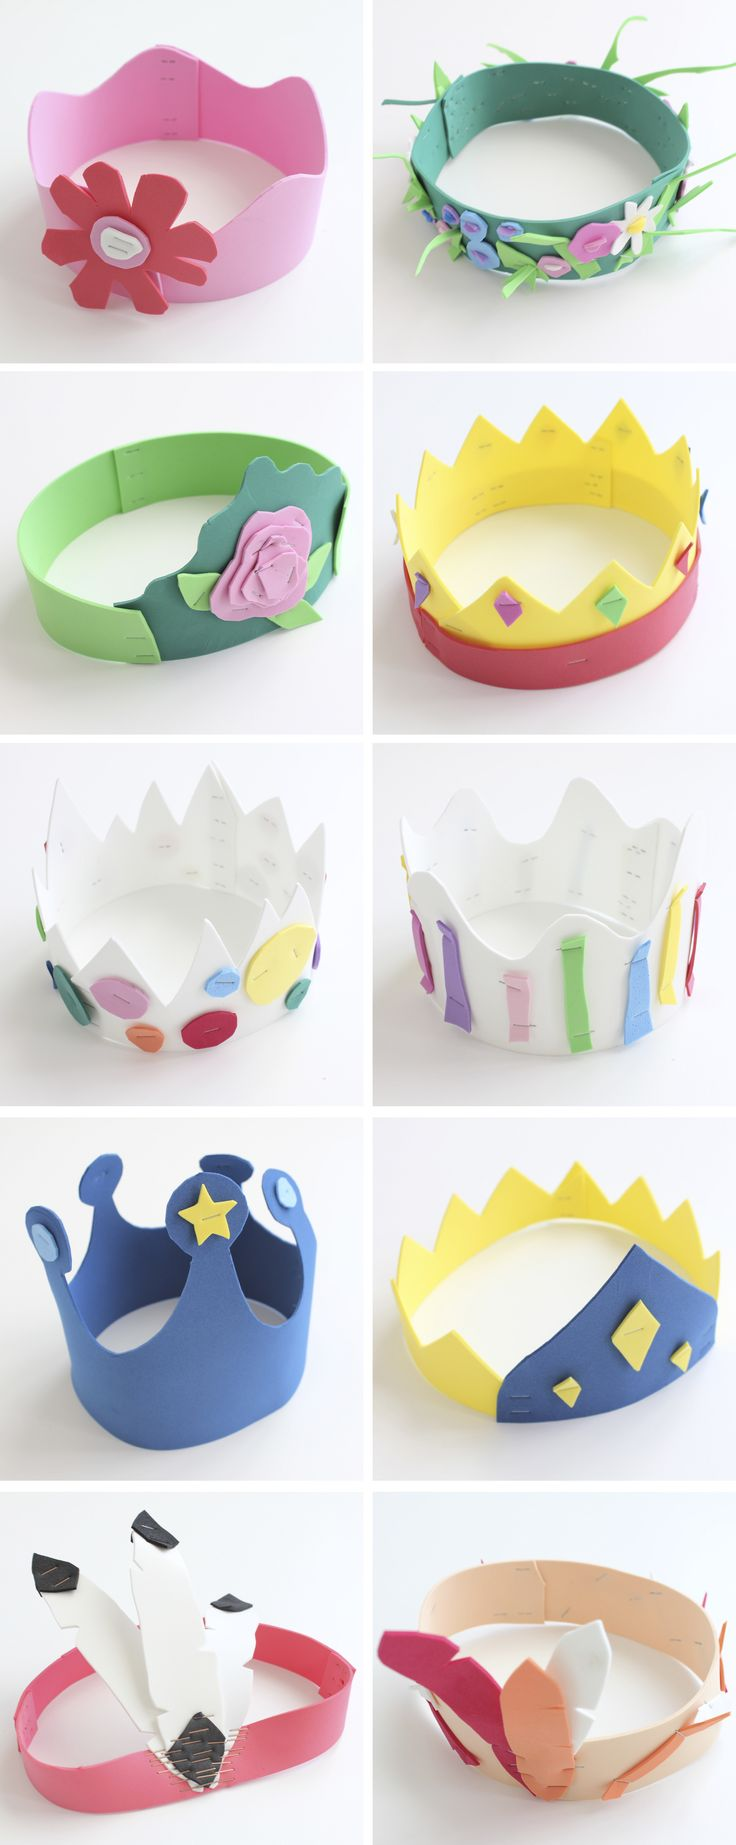 EVA foam crowns. Cute idea for story time!